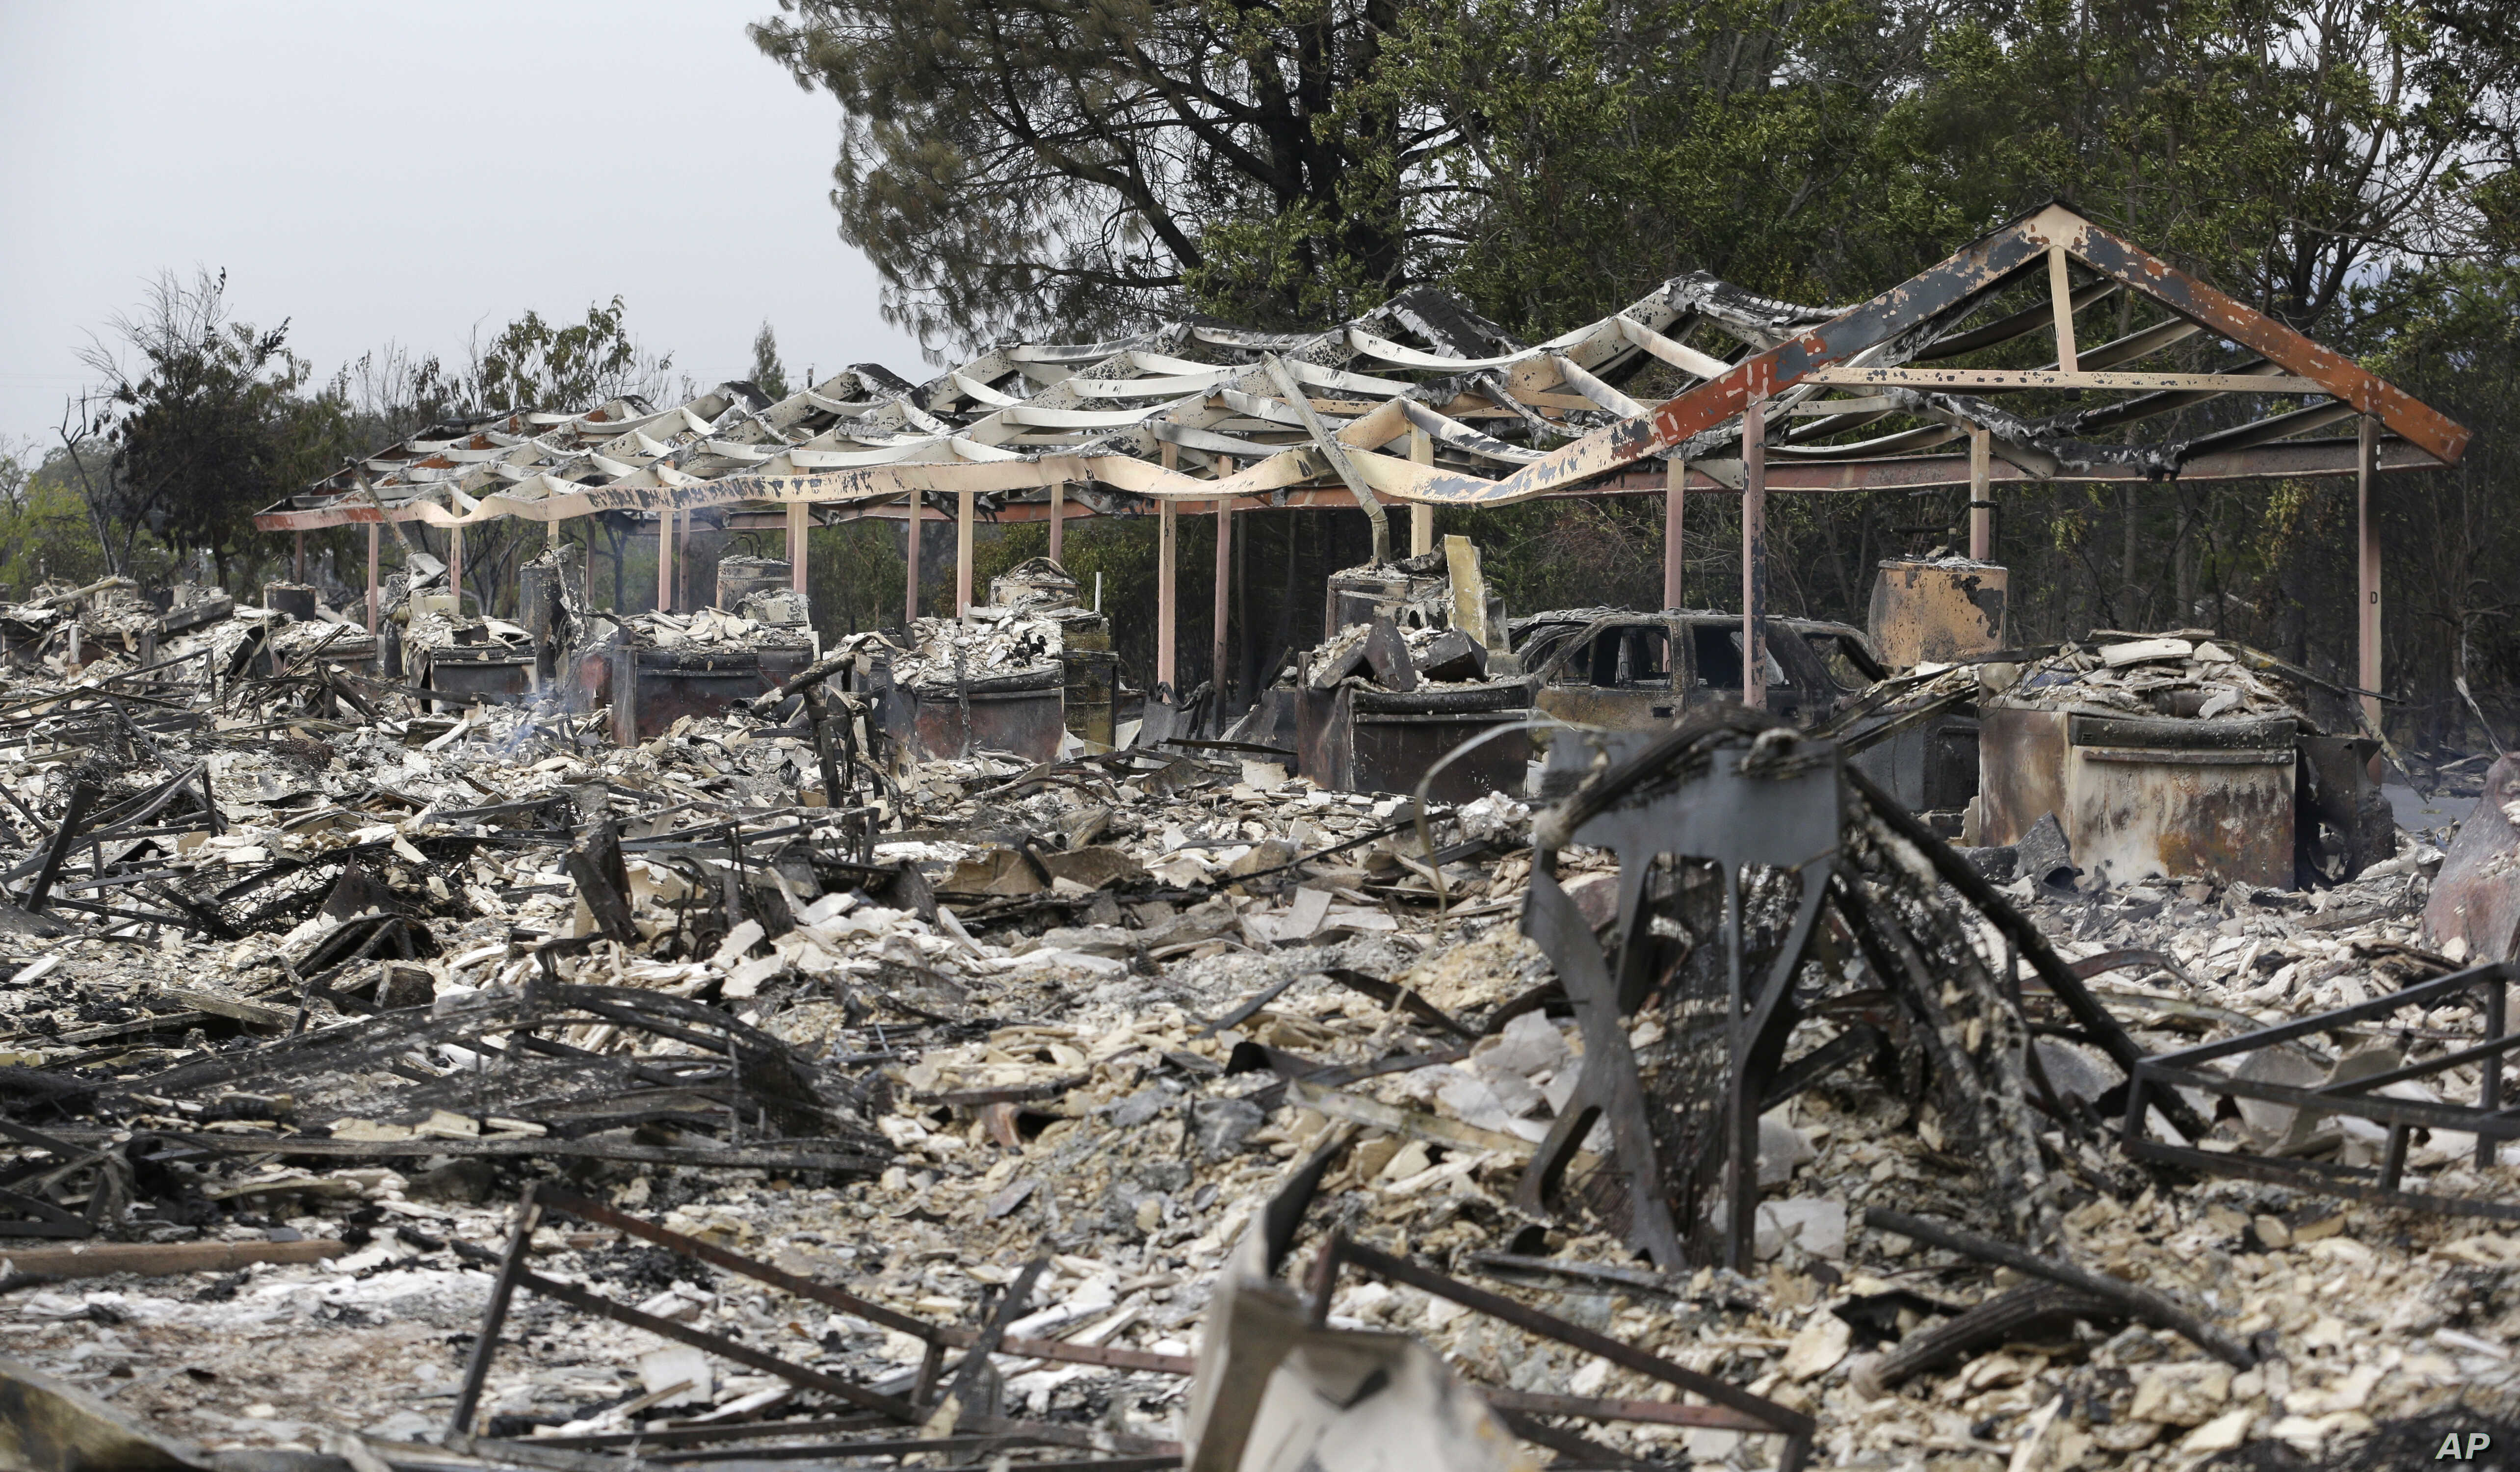 The charred remains of an apartment complex remain that burned from a wildfire two days earlier, Sept. 14, 2015, in Middletown, Calif.